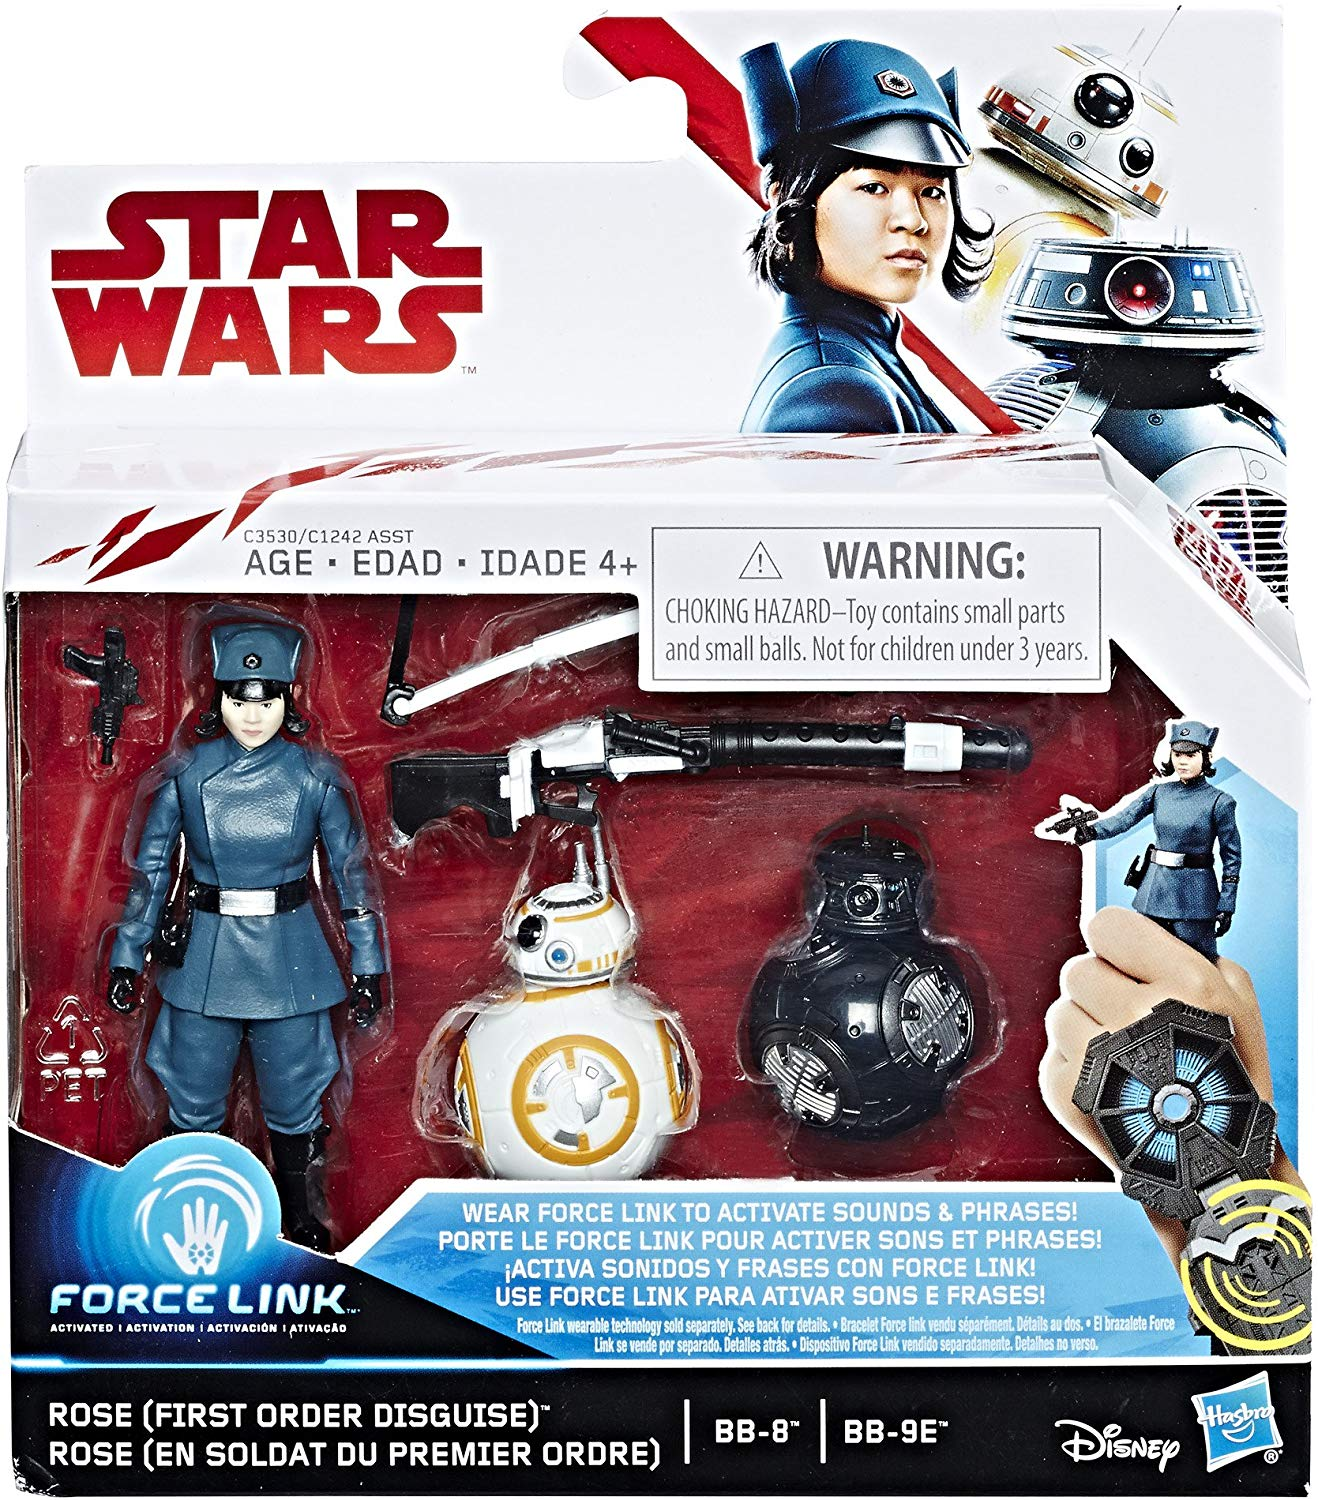 118 Action Figure Archive Droid of the Day Hasbro Star Wars The Last Jedi Action Figure Checklist Review Guide BB-9E